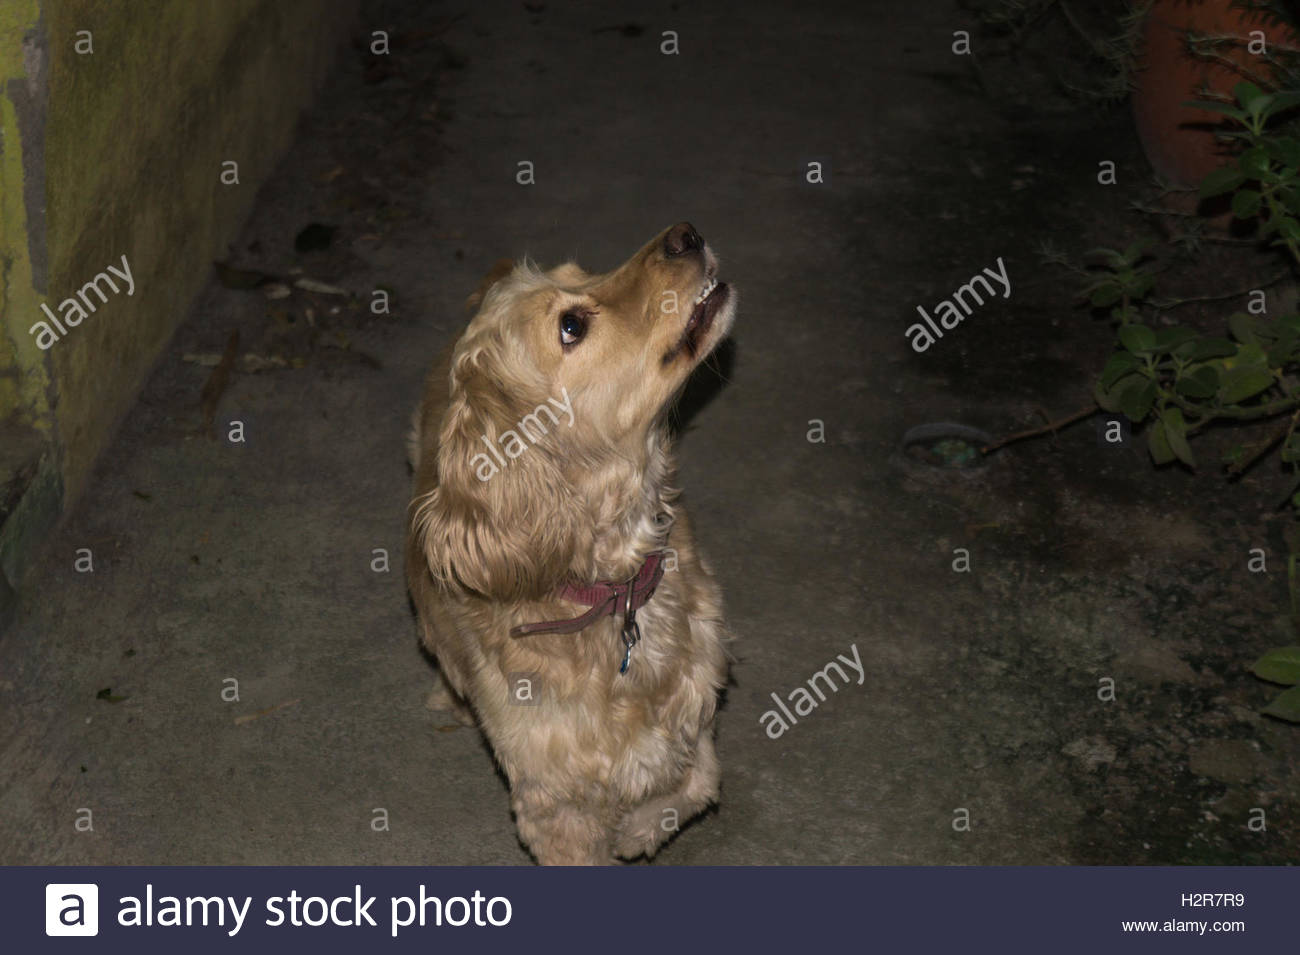 Lola looking for cats - Stock Image